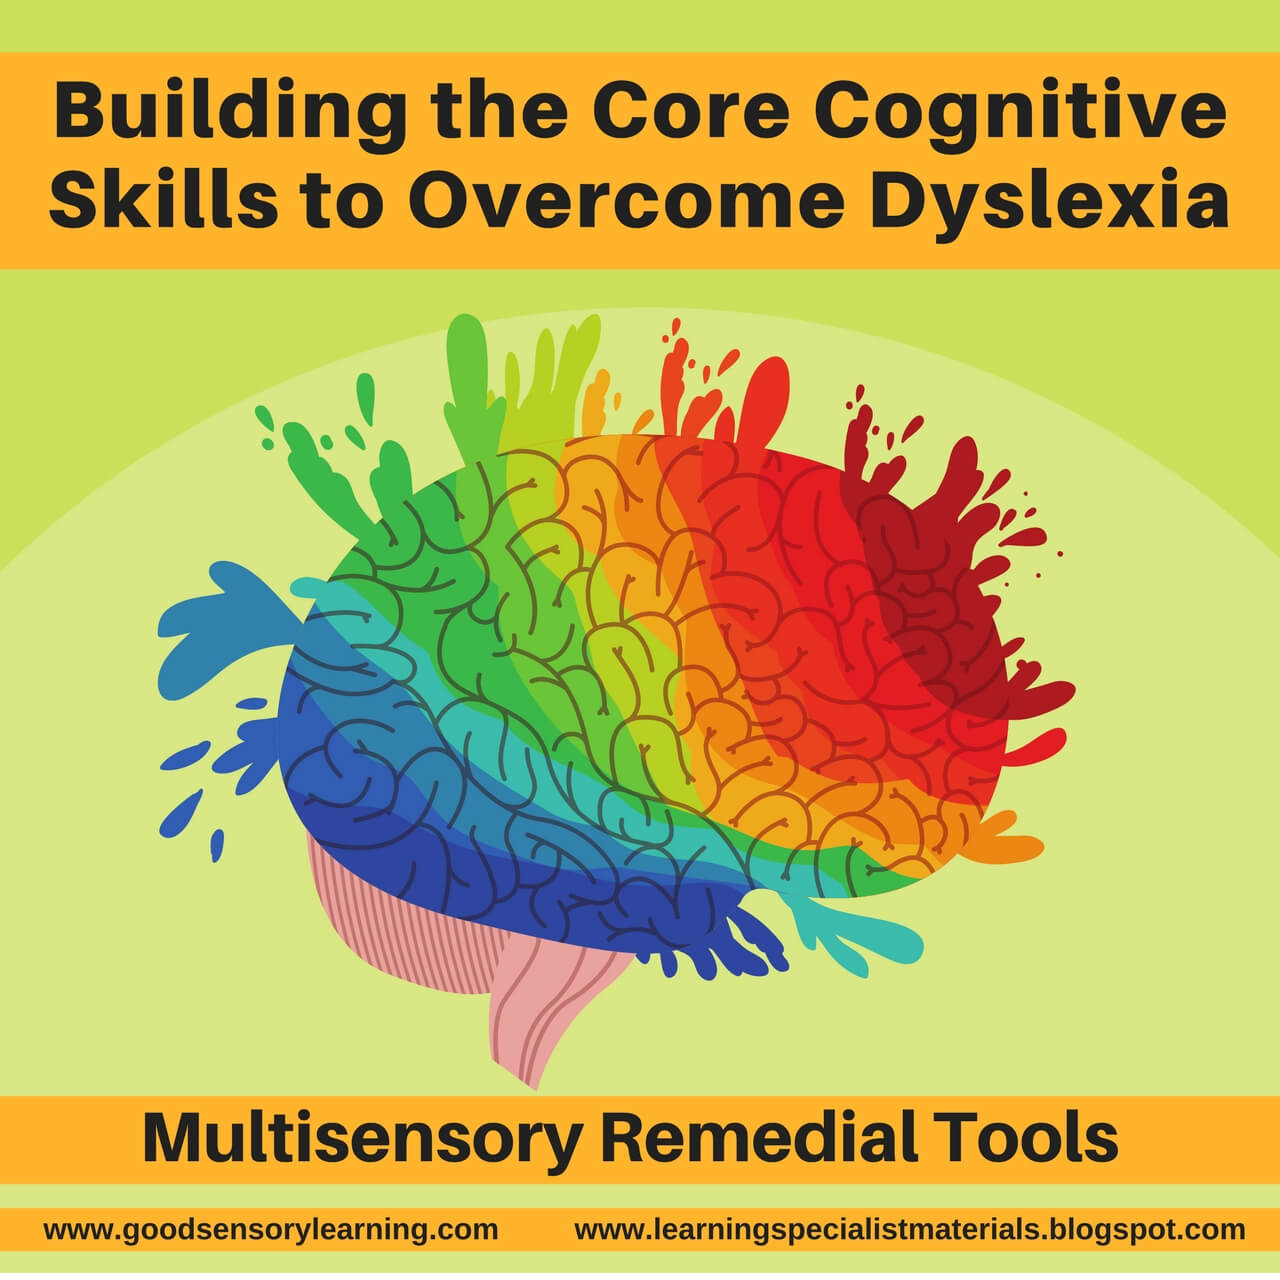 Come learn how cognitive remedial therapy can help remediate students with dyslexia.  You can also discover some of the needed educational materials.